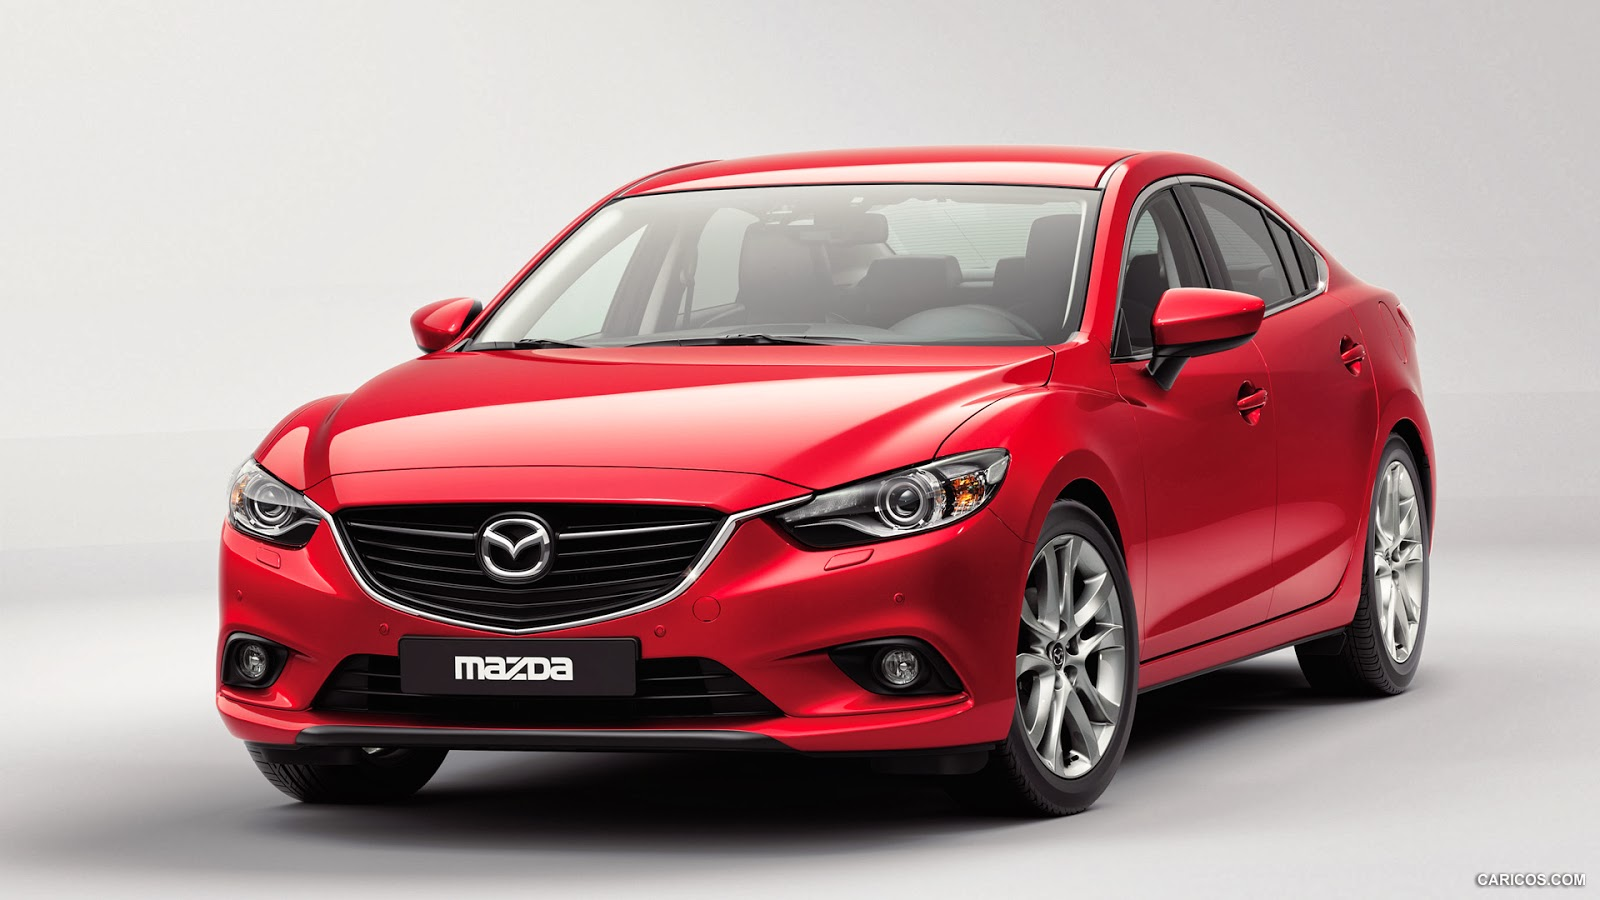 mazda 6 hd wallpapers 2014 hd wallpapers blog. Black Bedroom Furniture Sets. Home Design Ideas